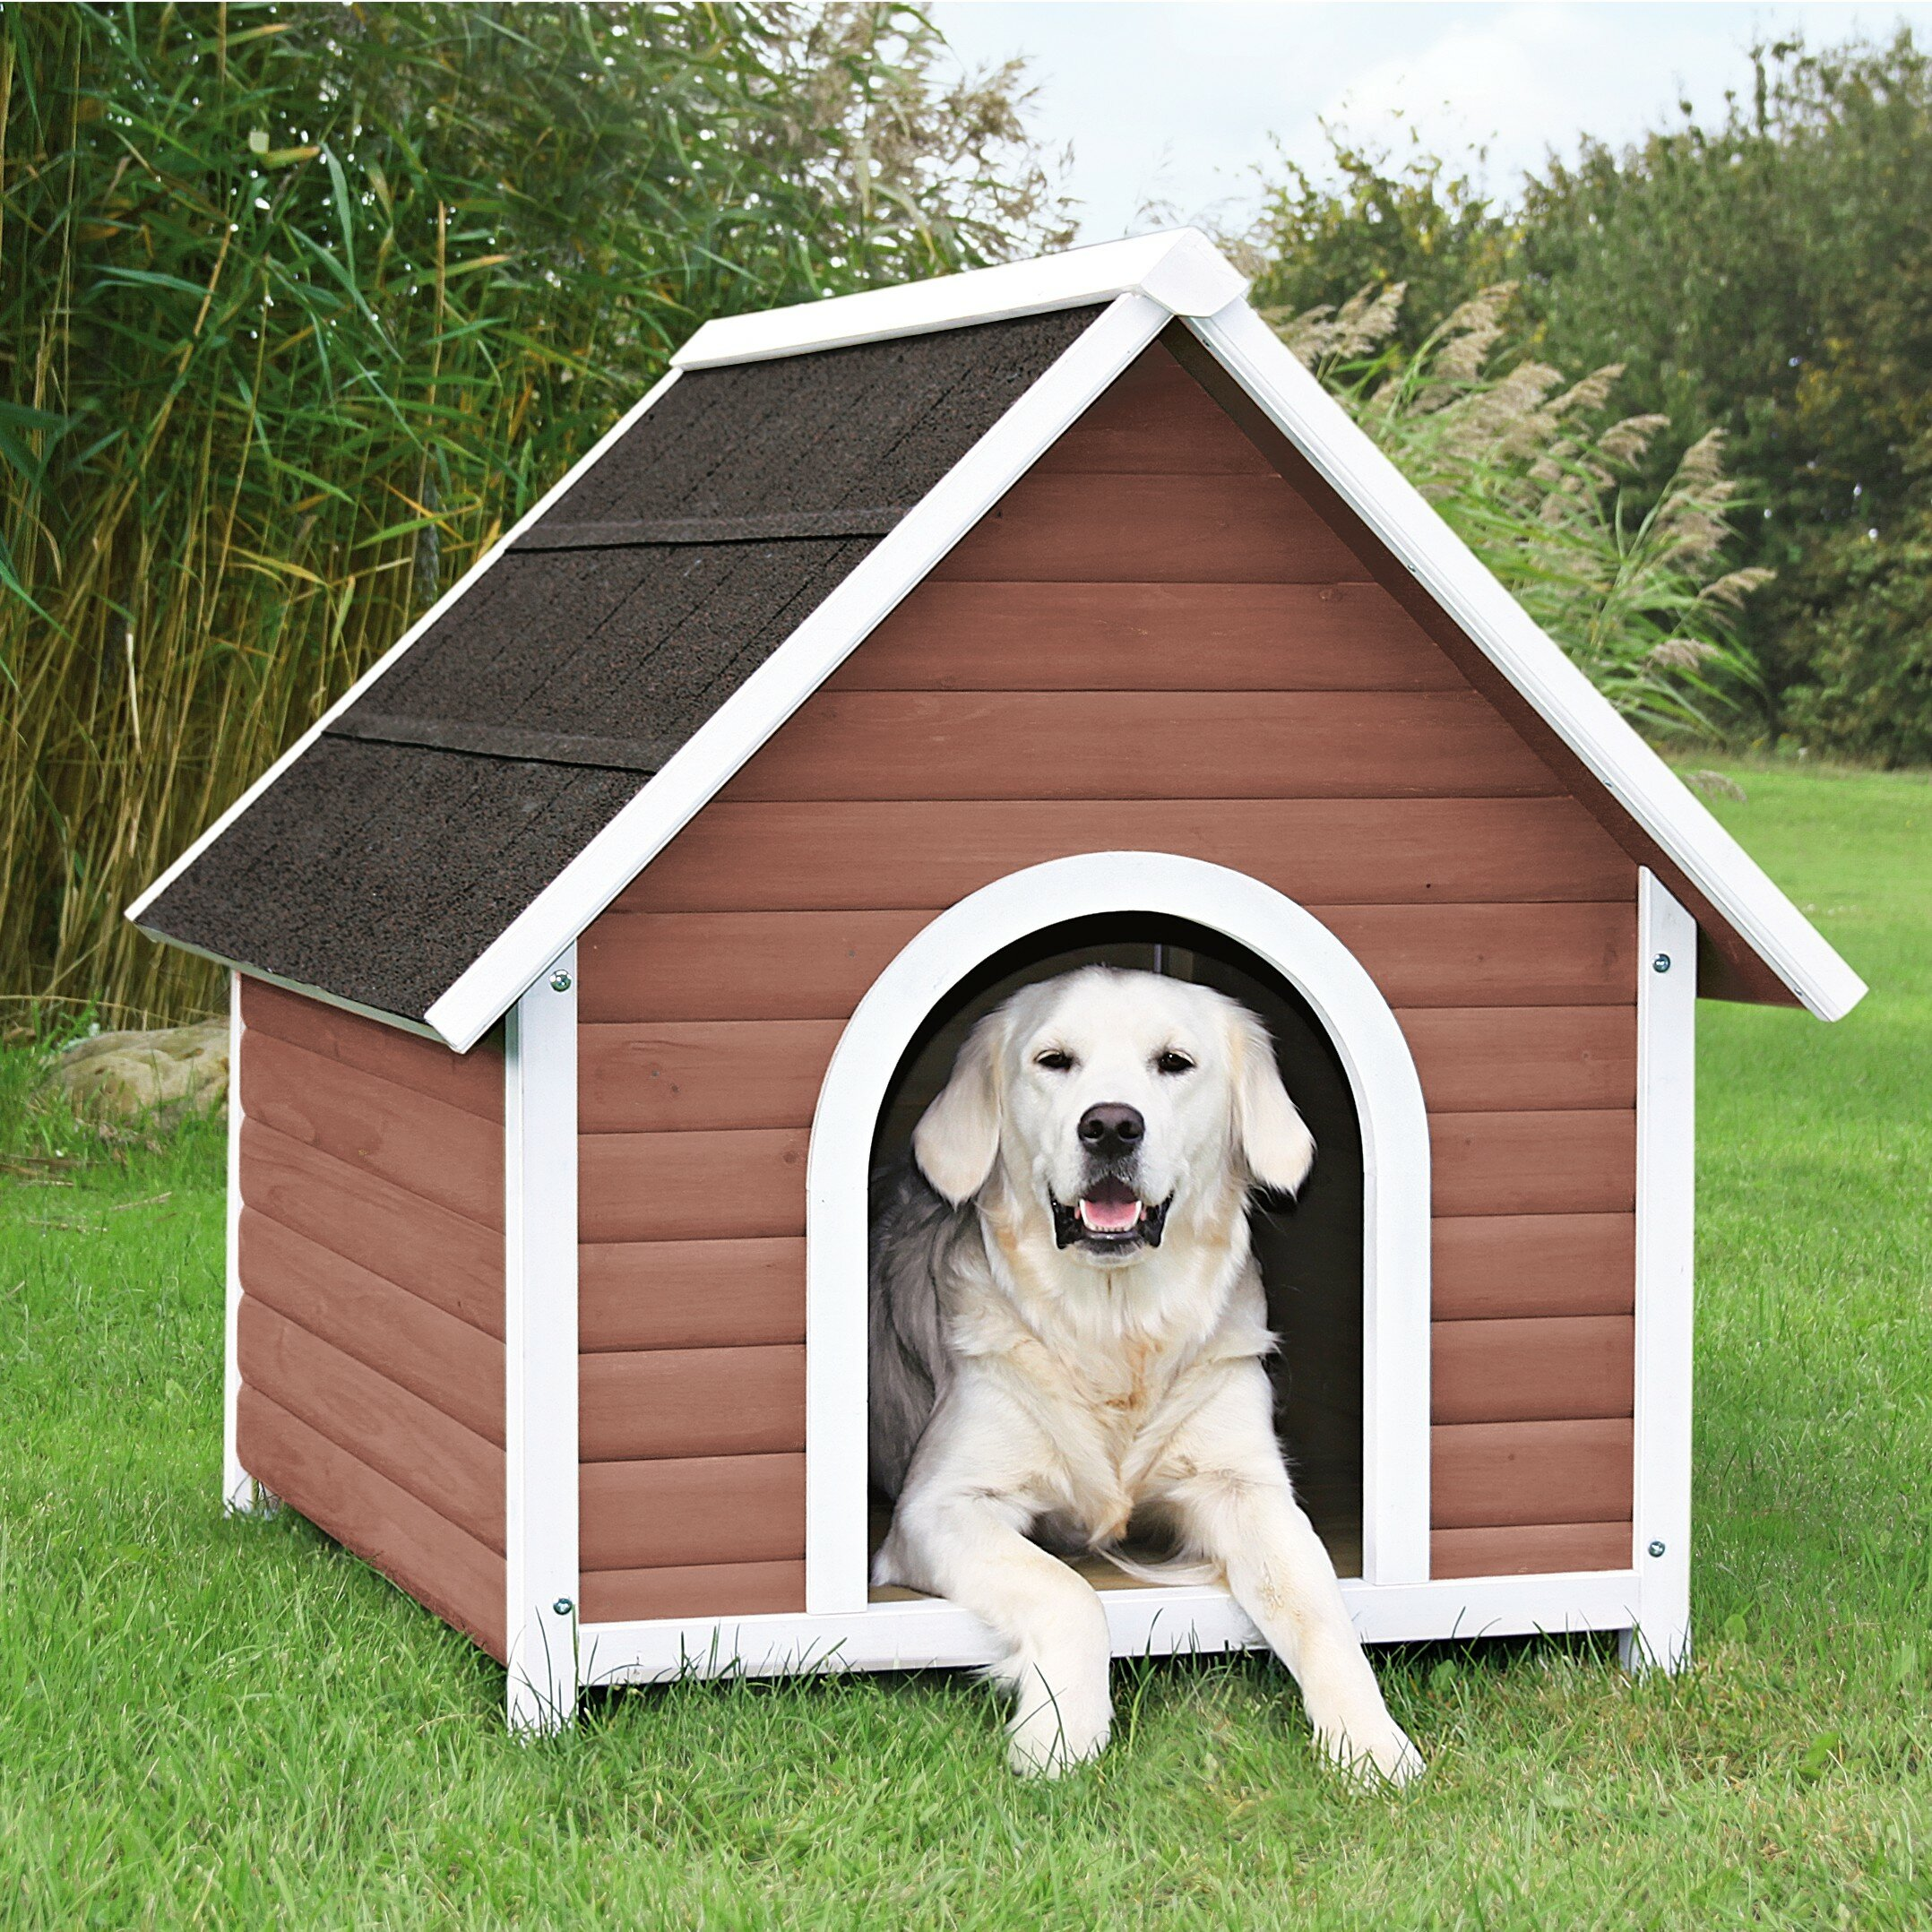 DogS House